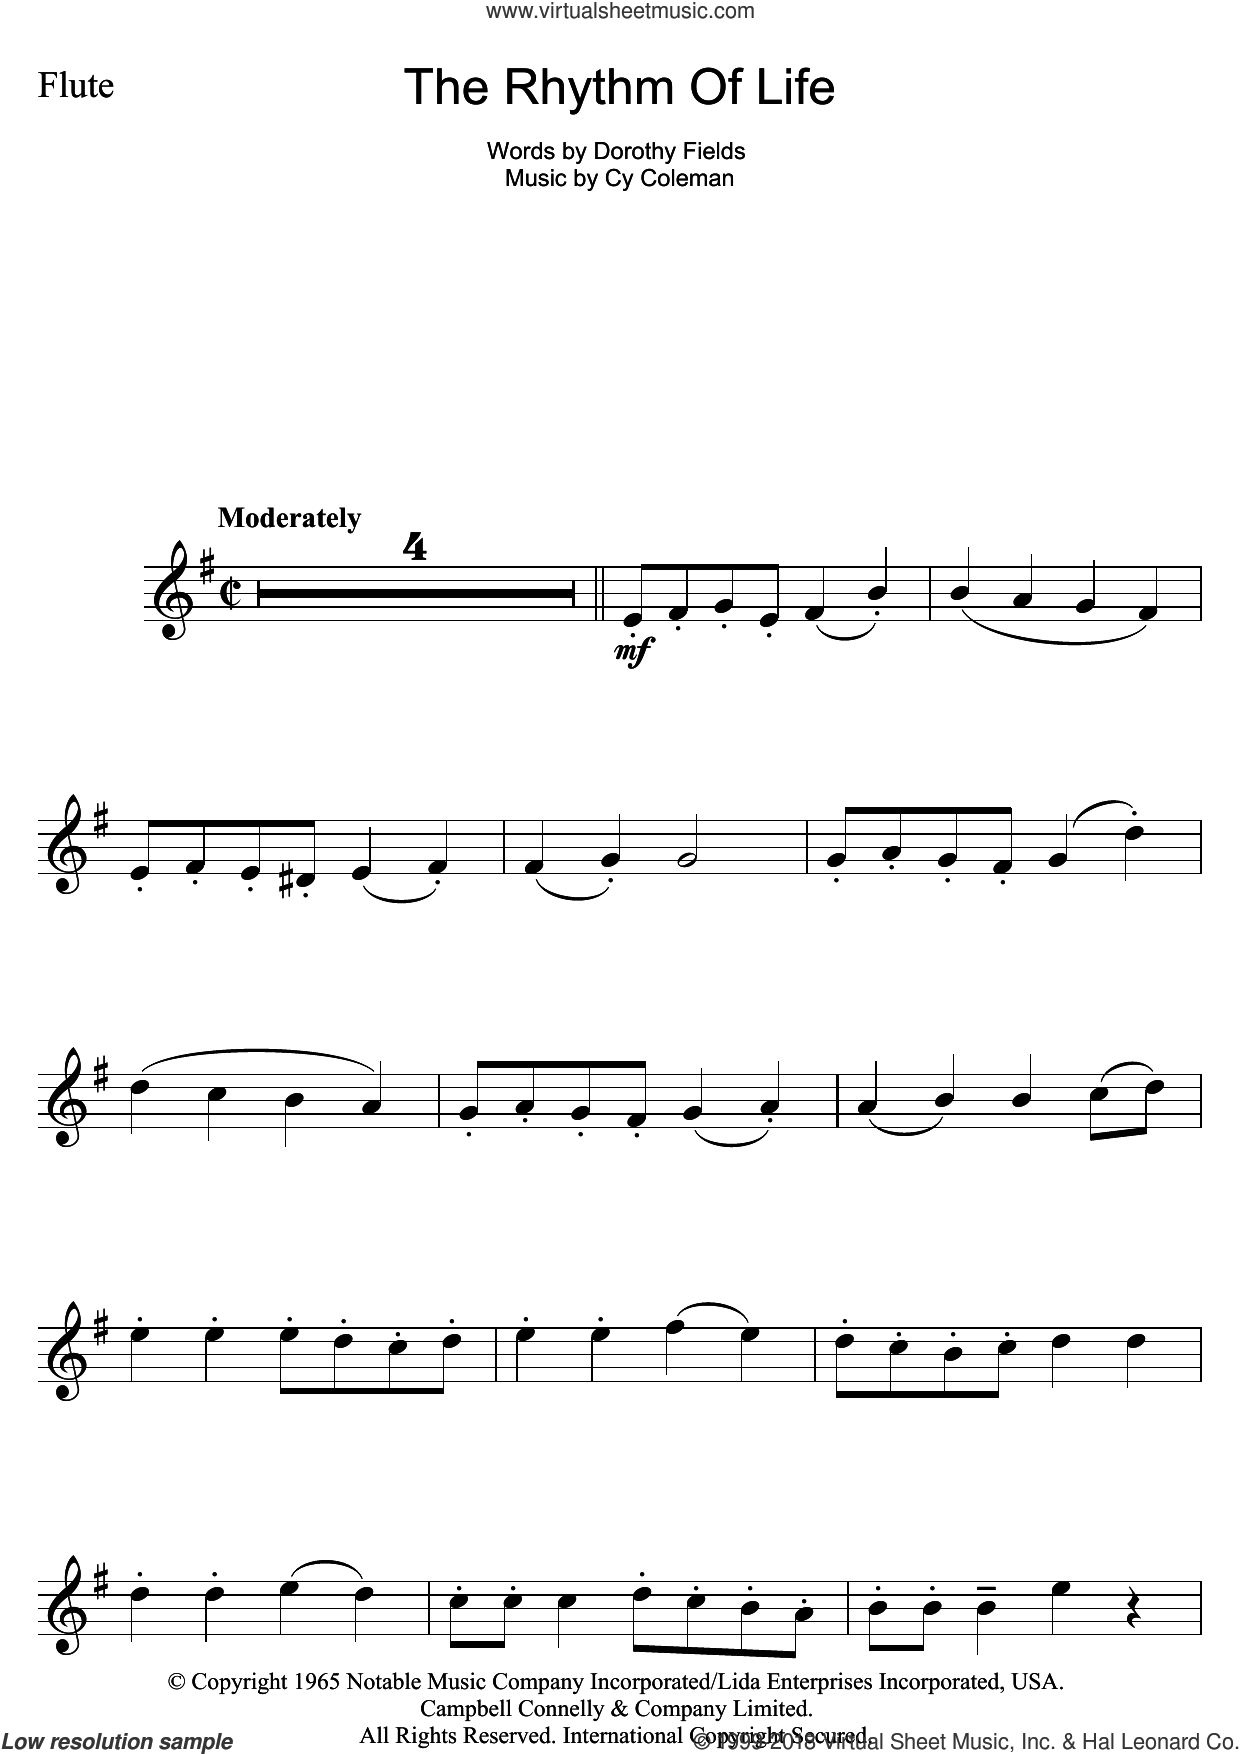 The Rhythm Of Life (from Sweet Charity) sheet music for flute solo by Dorothy Fields